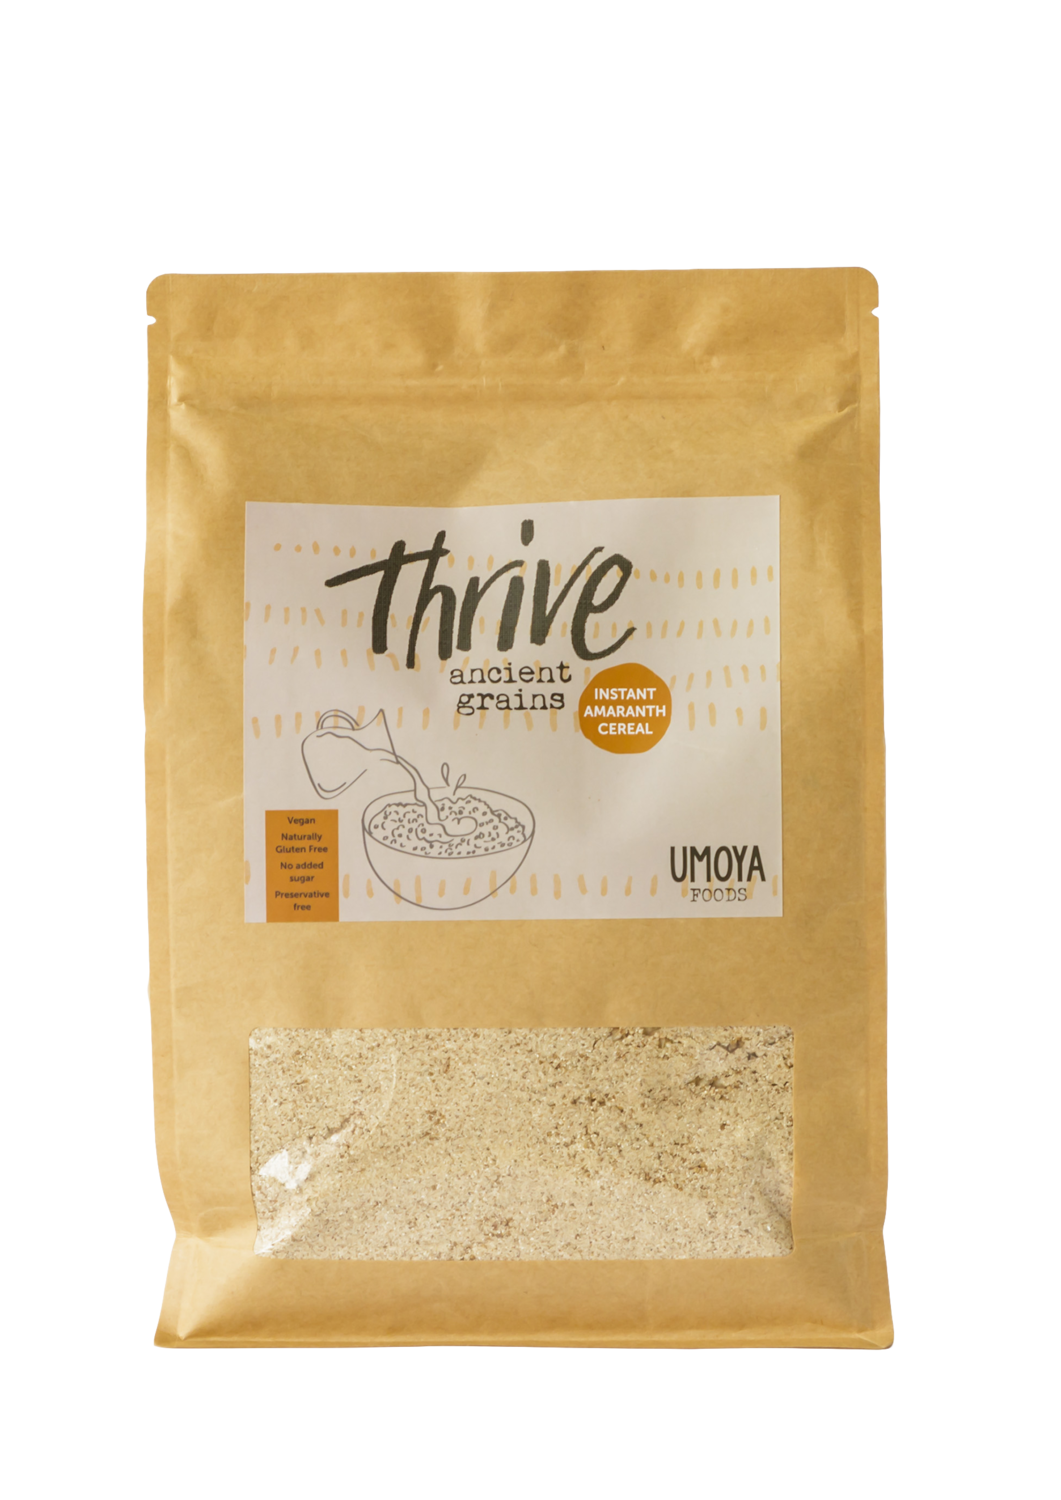 Thrive Ancient Grains